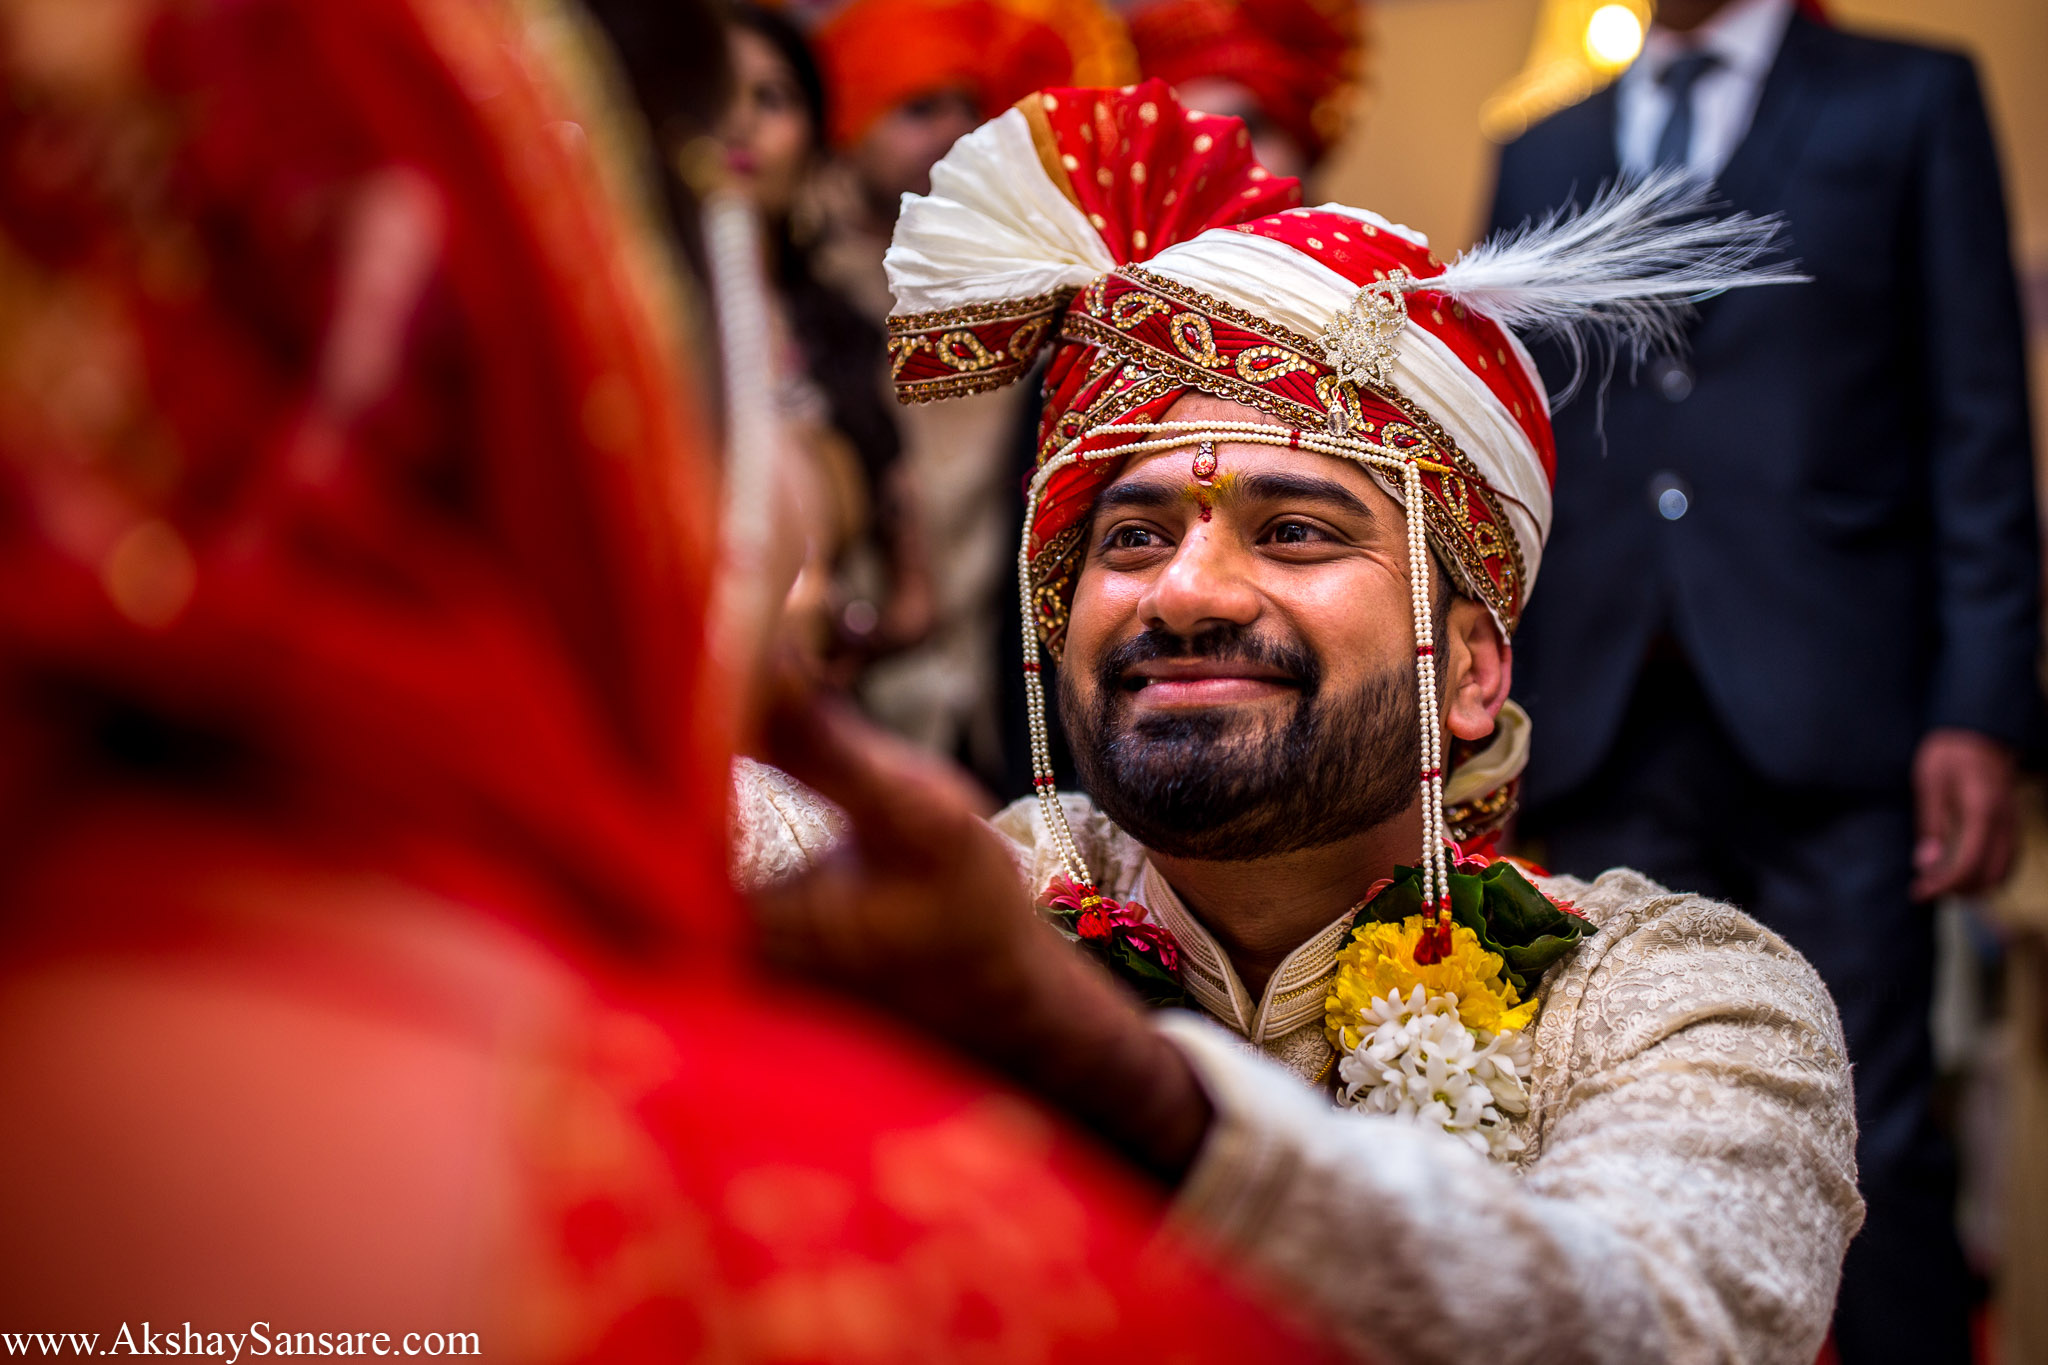 Ajay & Devika Akshay Sansare Photography Best Candid wedding photographer in mumbai india24.jpg